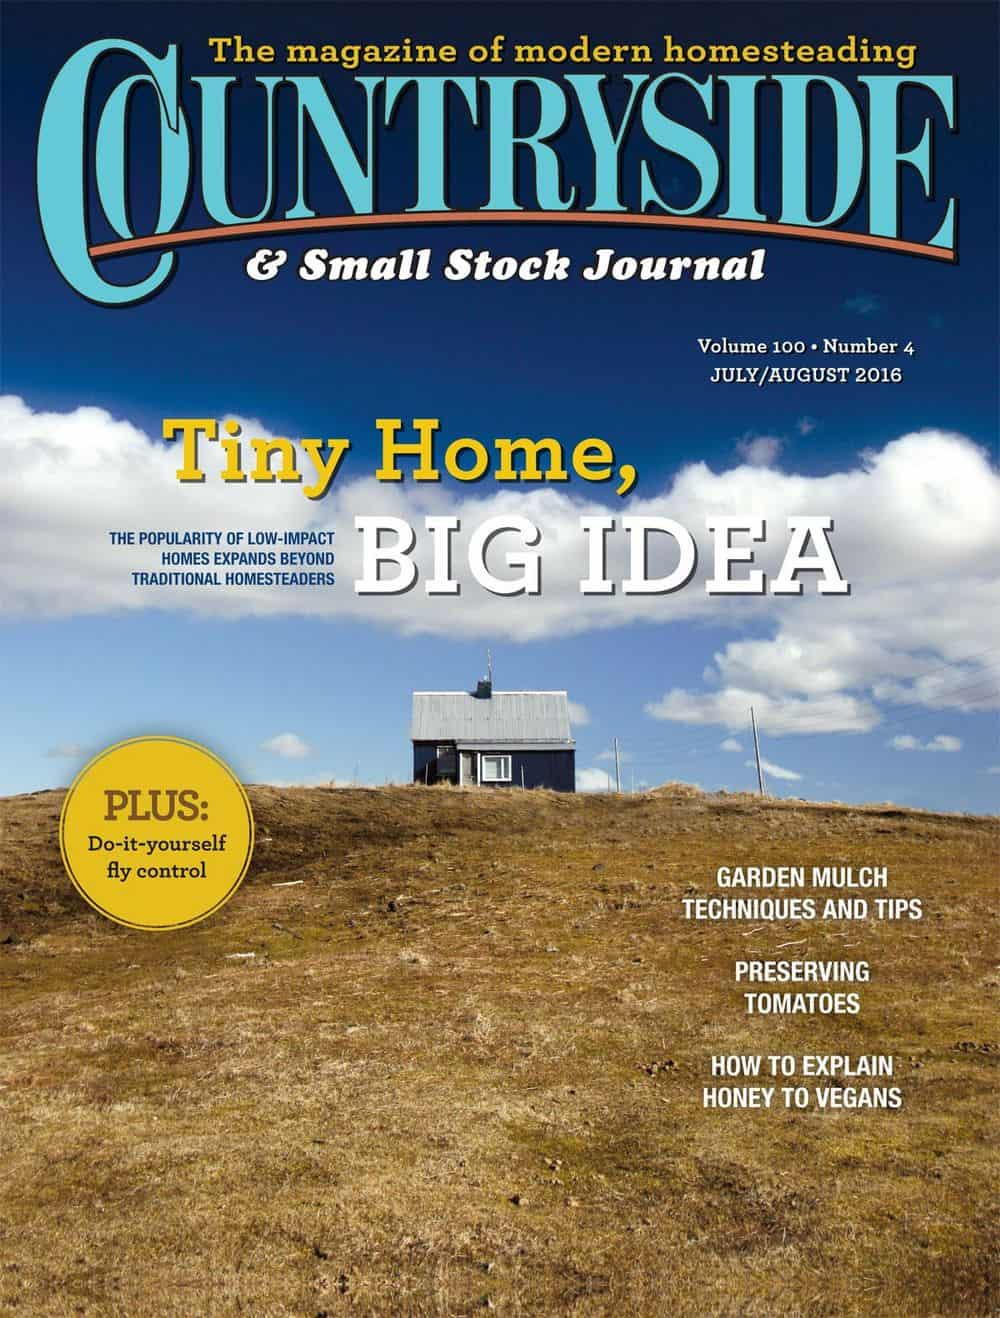 The Countryside and Small Stock Journal